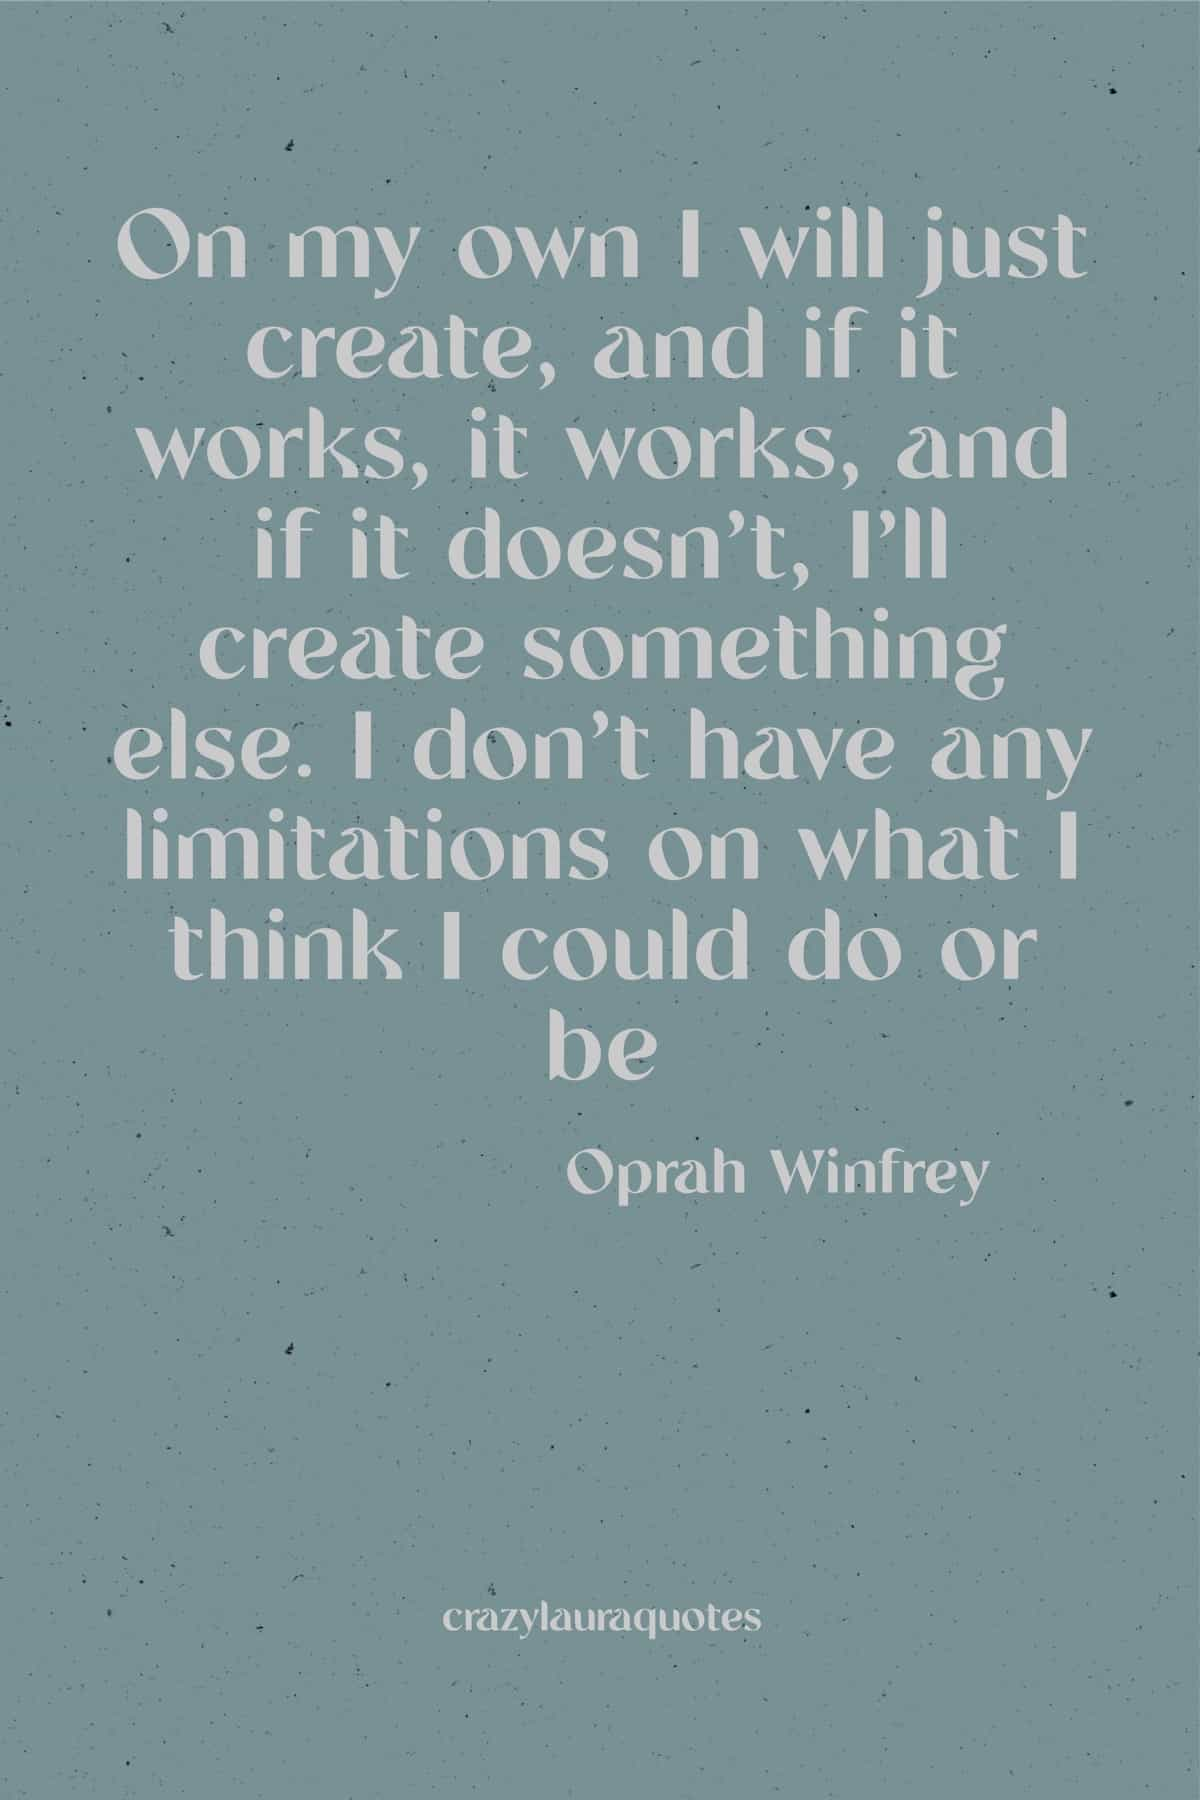 no limitations oprah winfrey quote